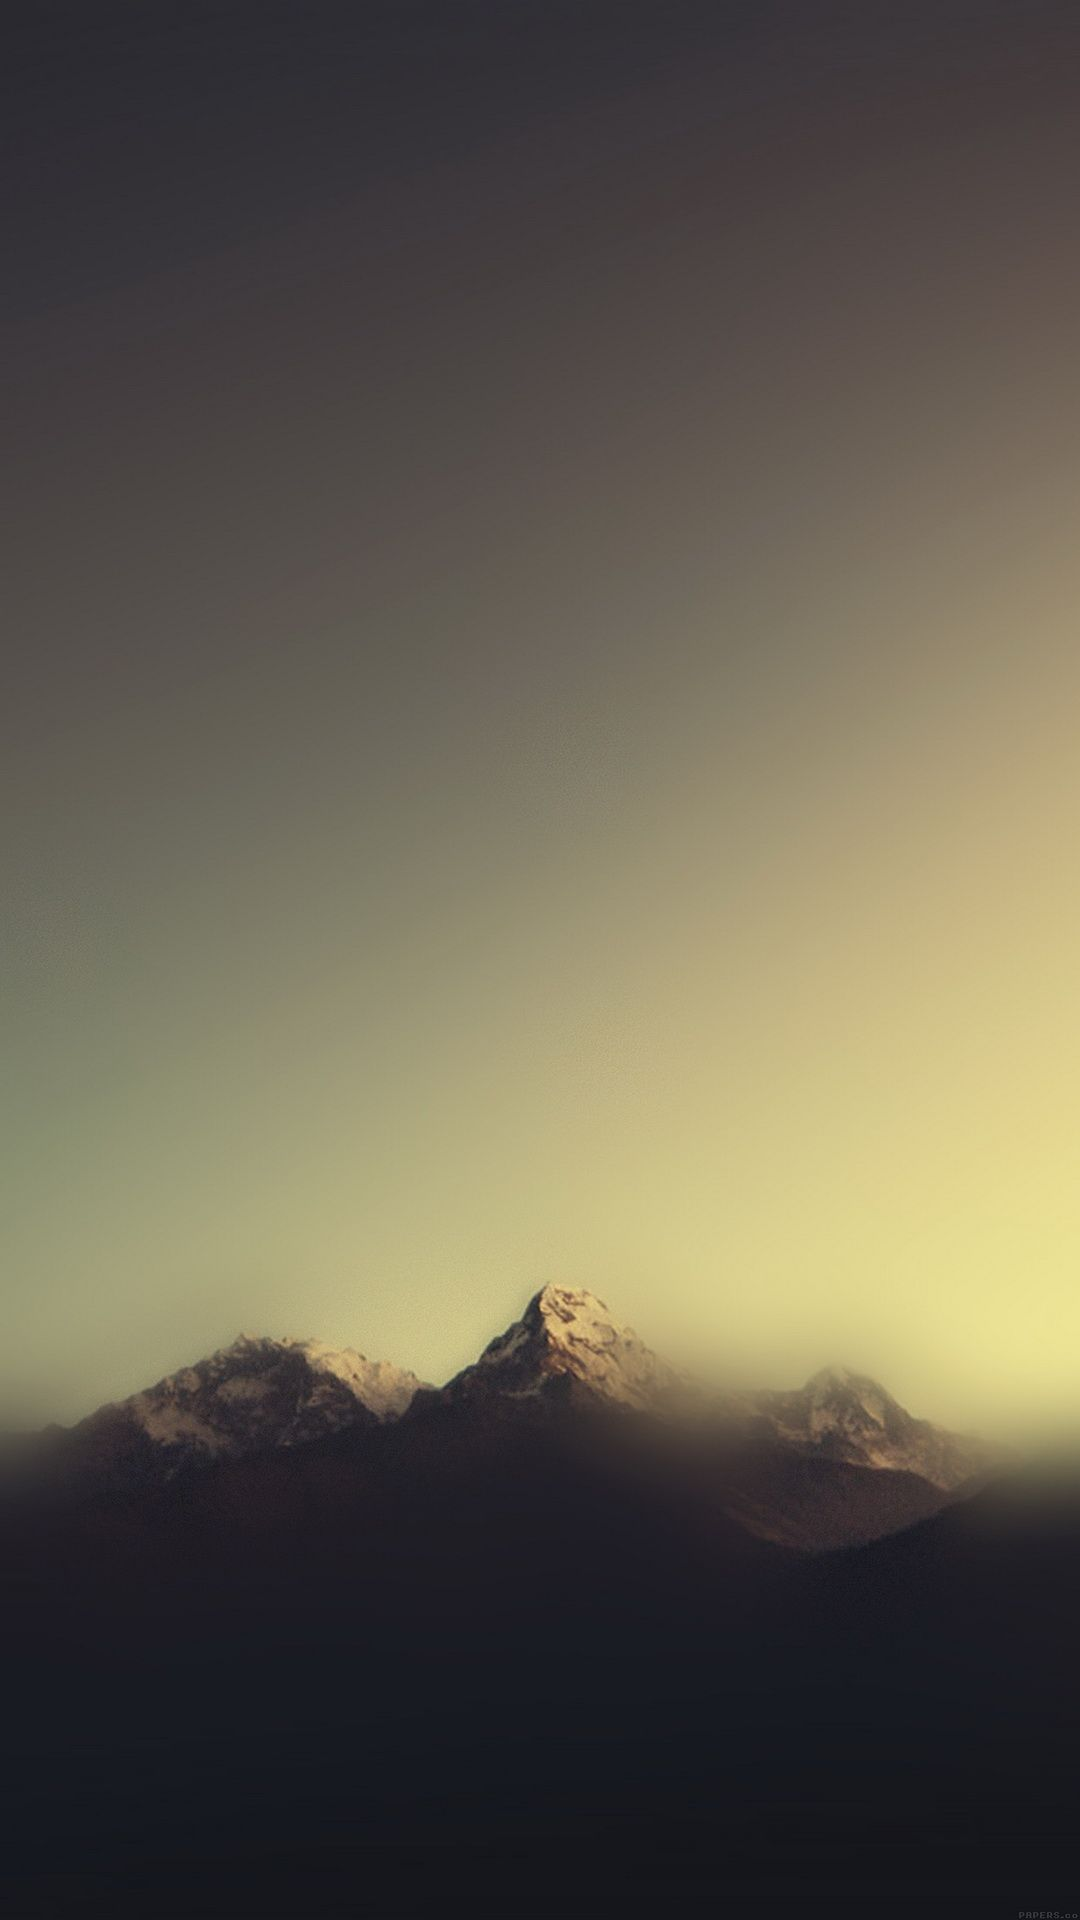 mountain blur minimal high quality htc one wallpapers and abstract backgrounds designed by the best and creative artists in the world